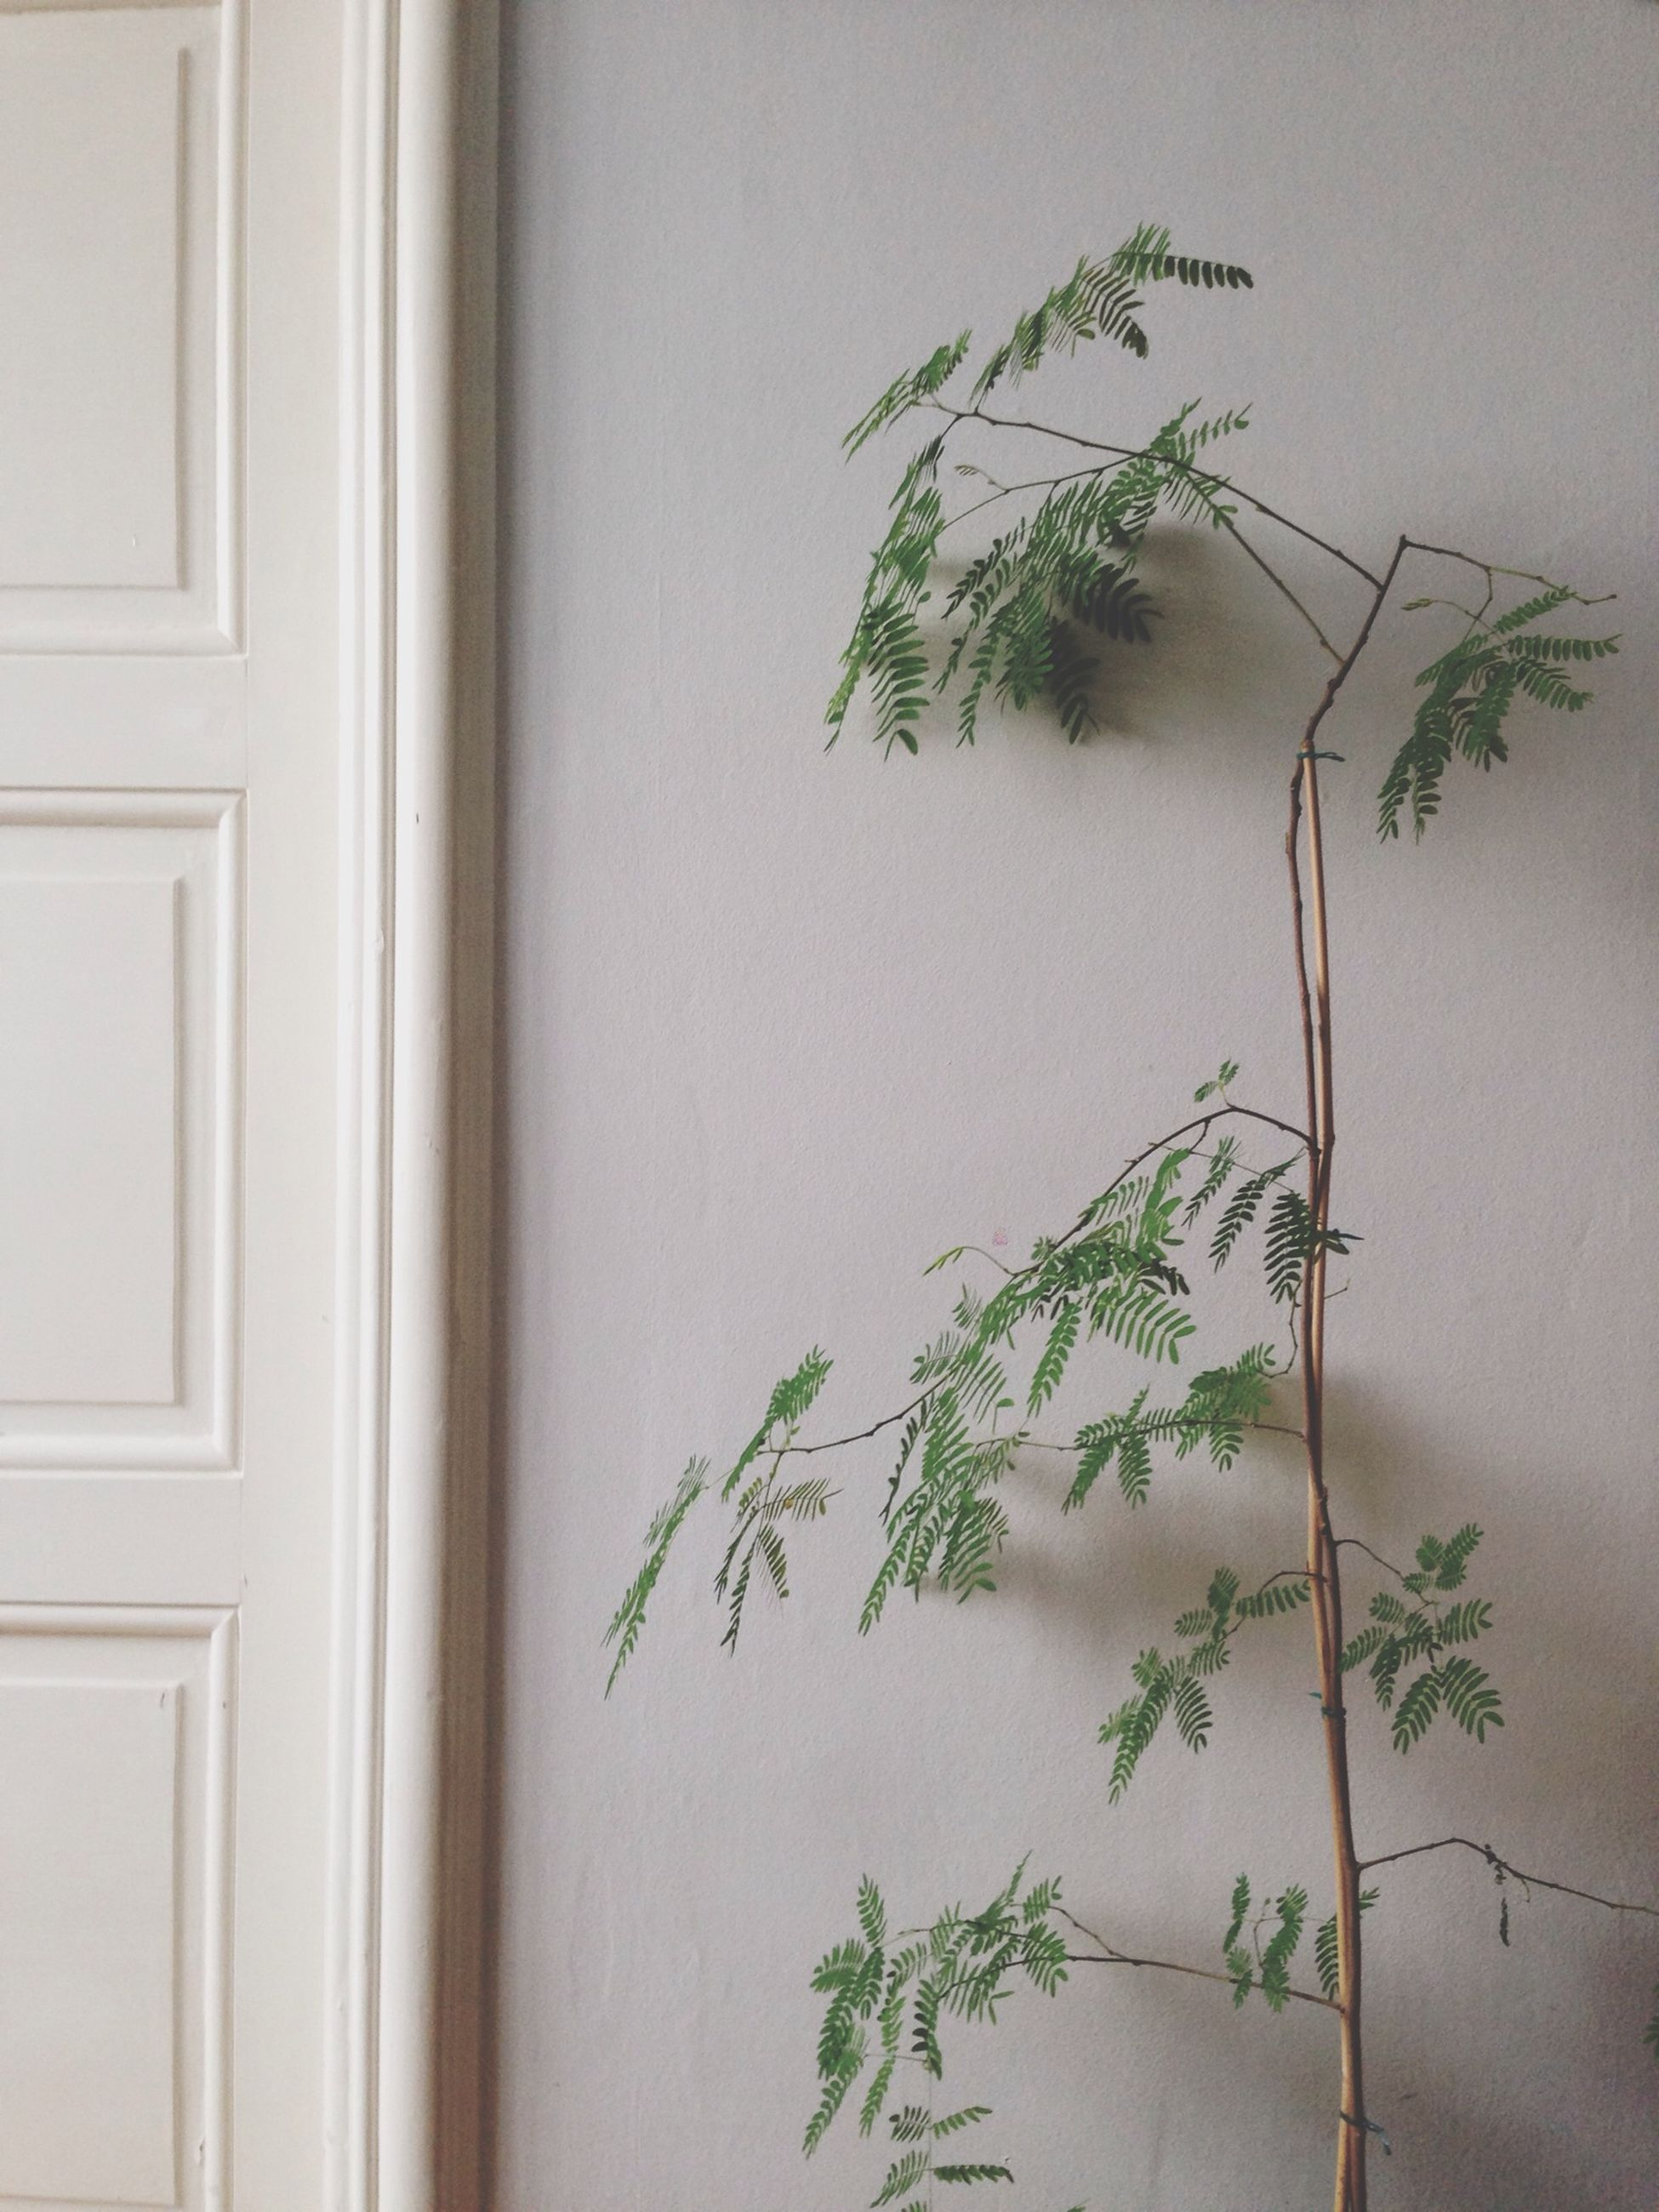 wall - building feature, wall, plant, built structure, growth, architecture, indoors, potted plant, leaf, close-up, green color, house, door, no people, window, building exterior, green, day, home interior, closed